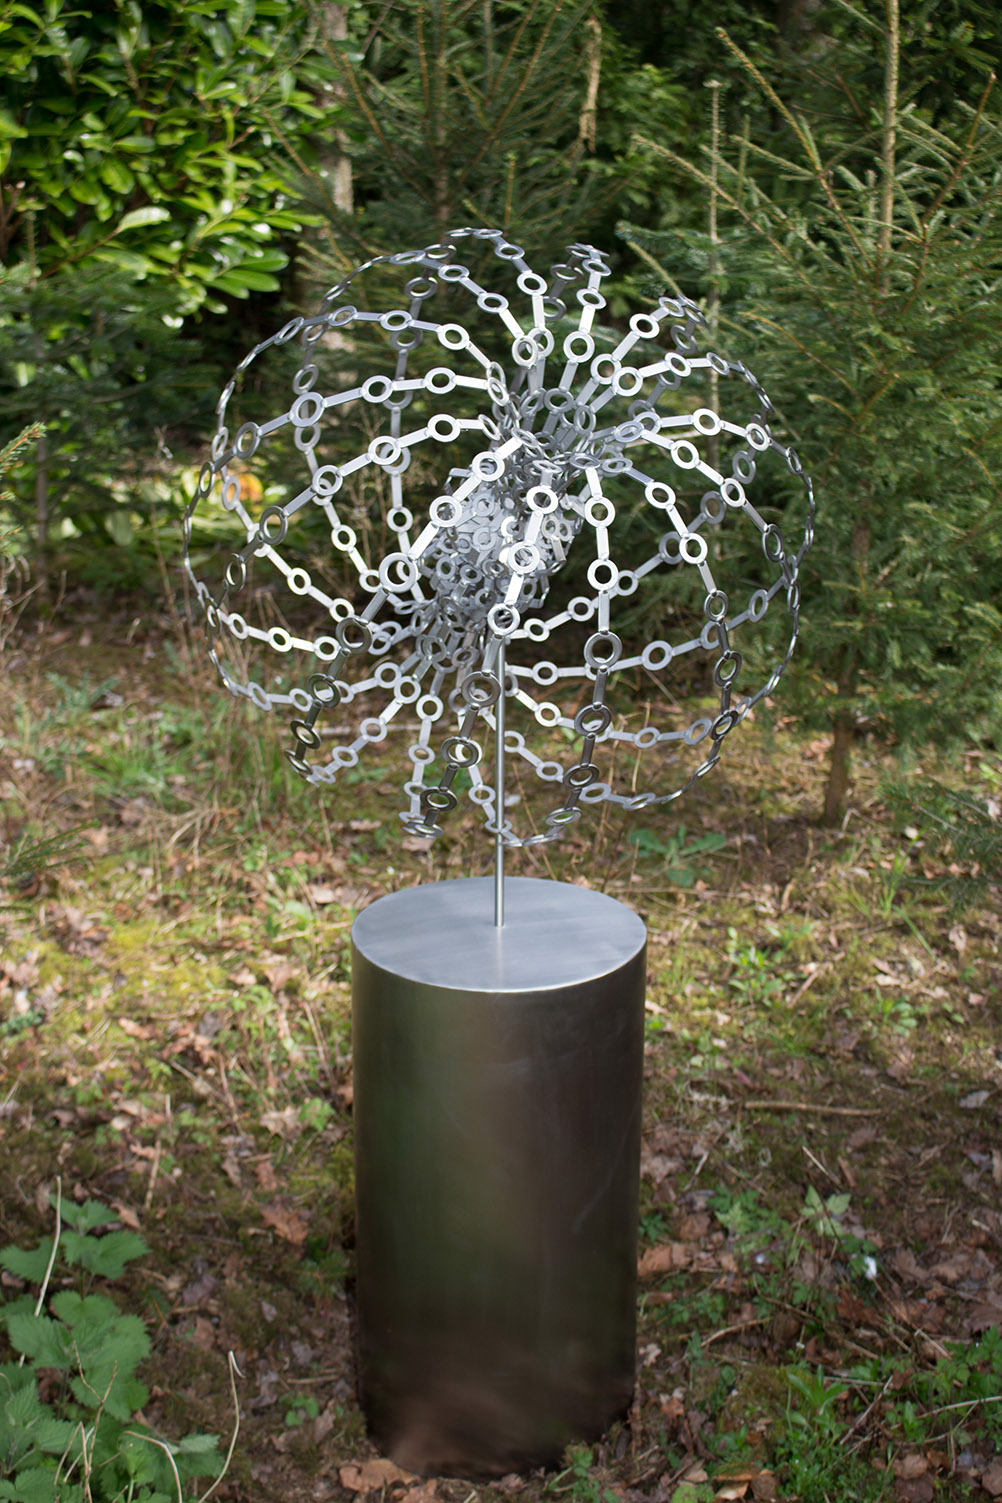 Stainless steel metal abstract garden sculpture - Potentials 2016